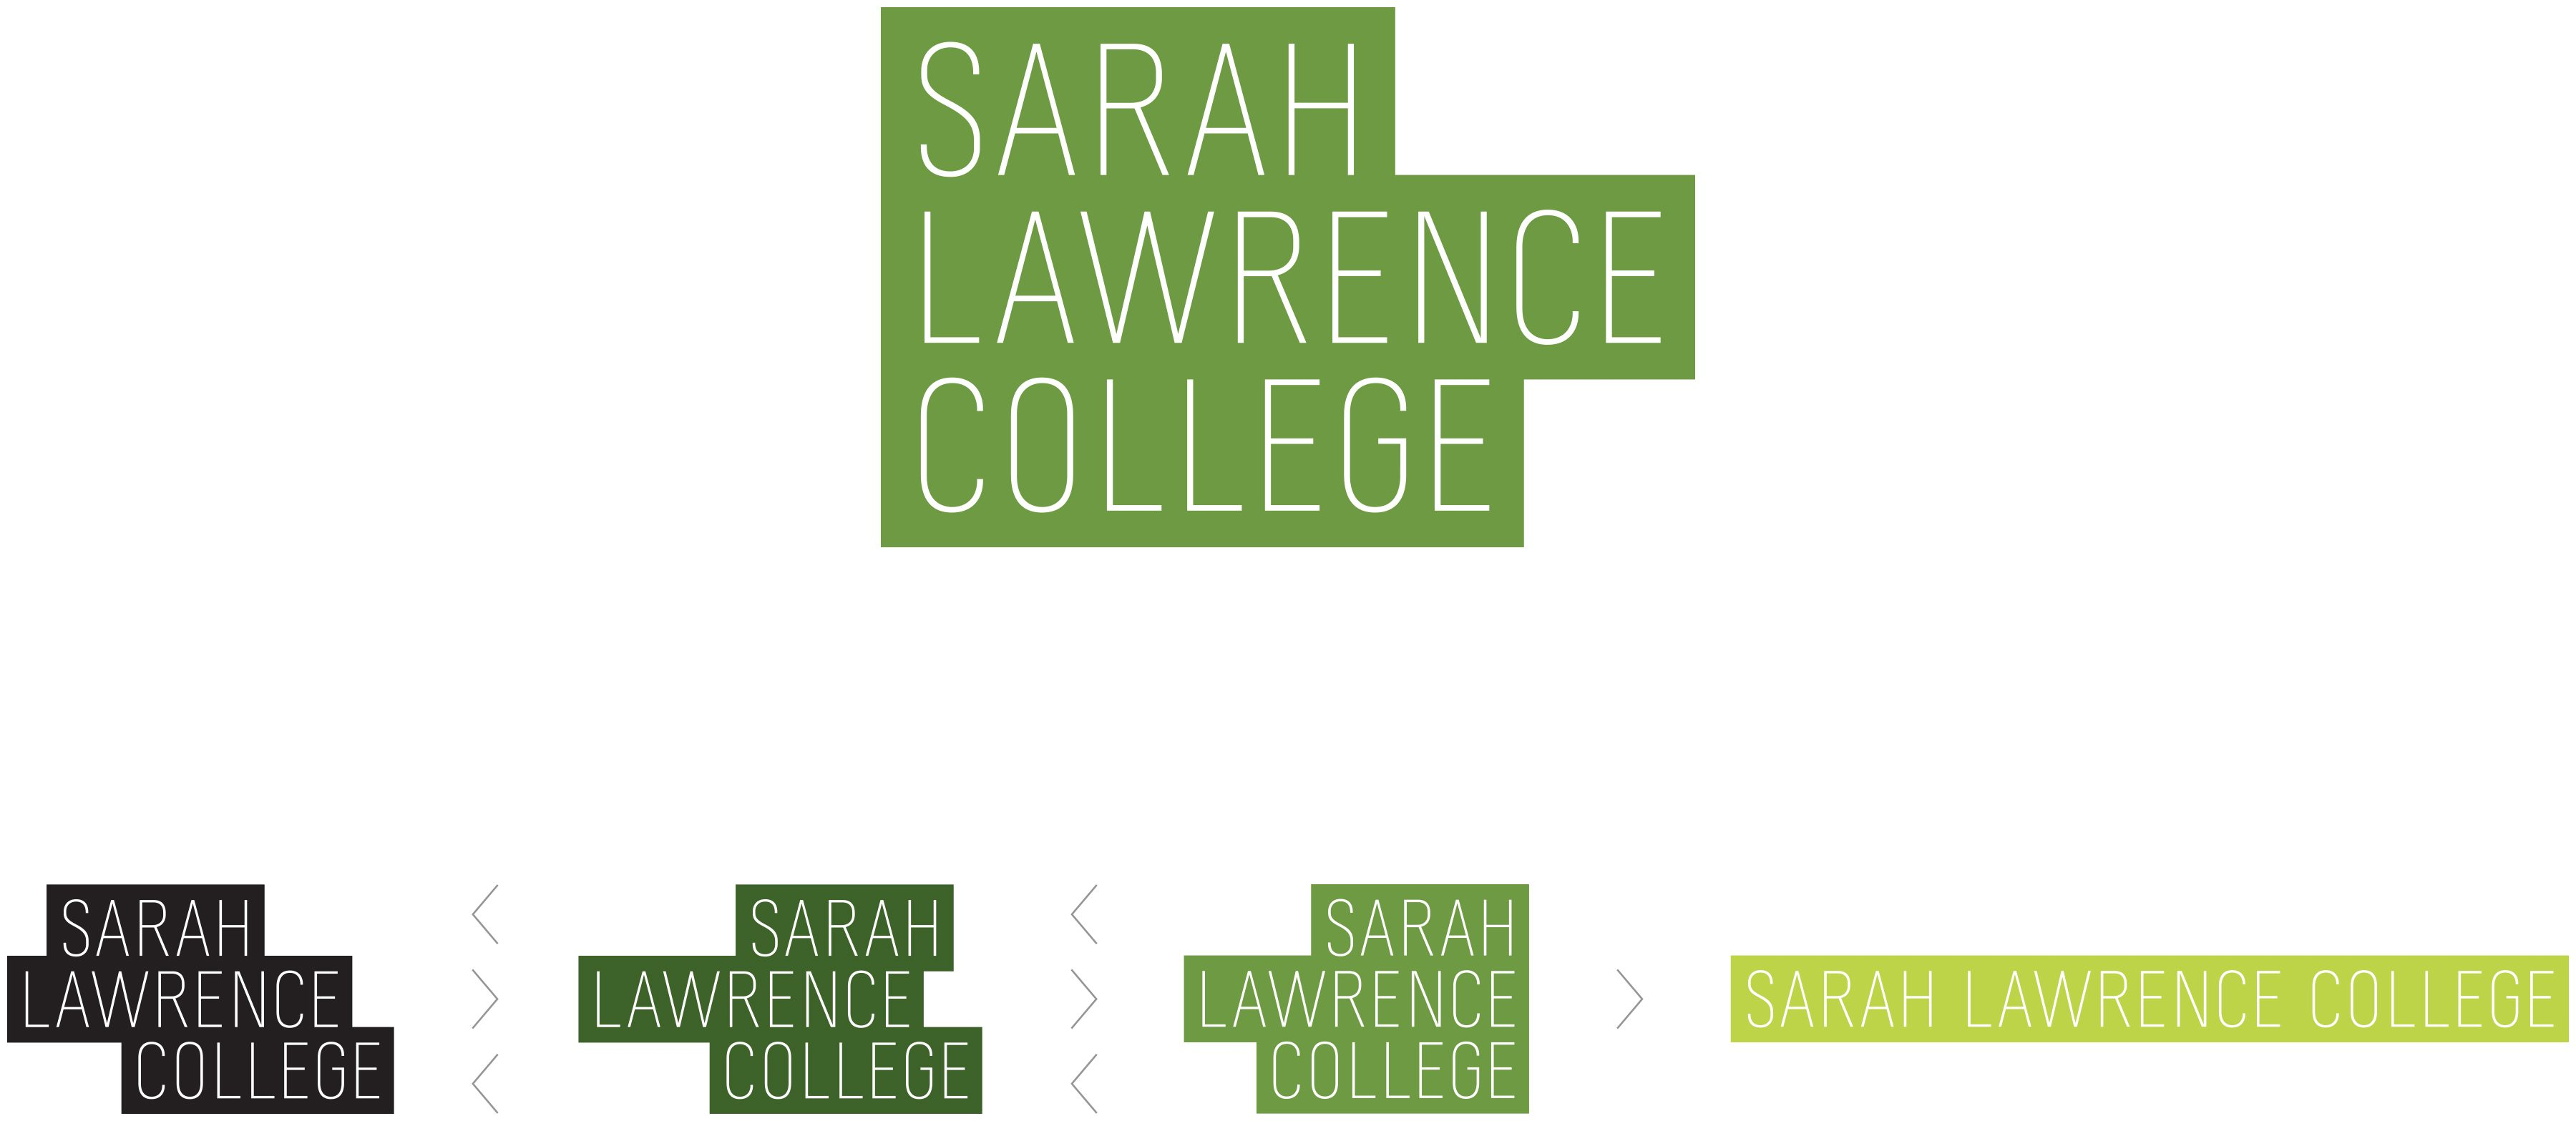 Sarah Lawrence College identifier